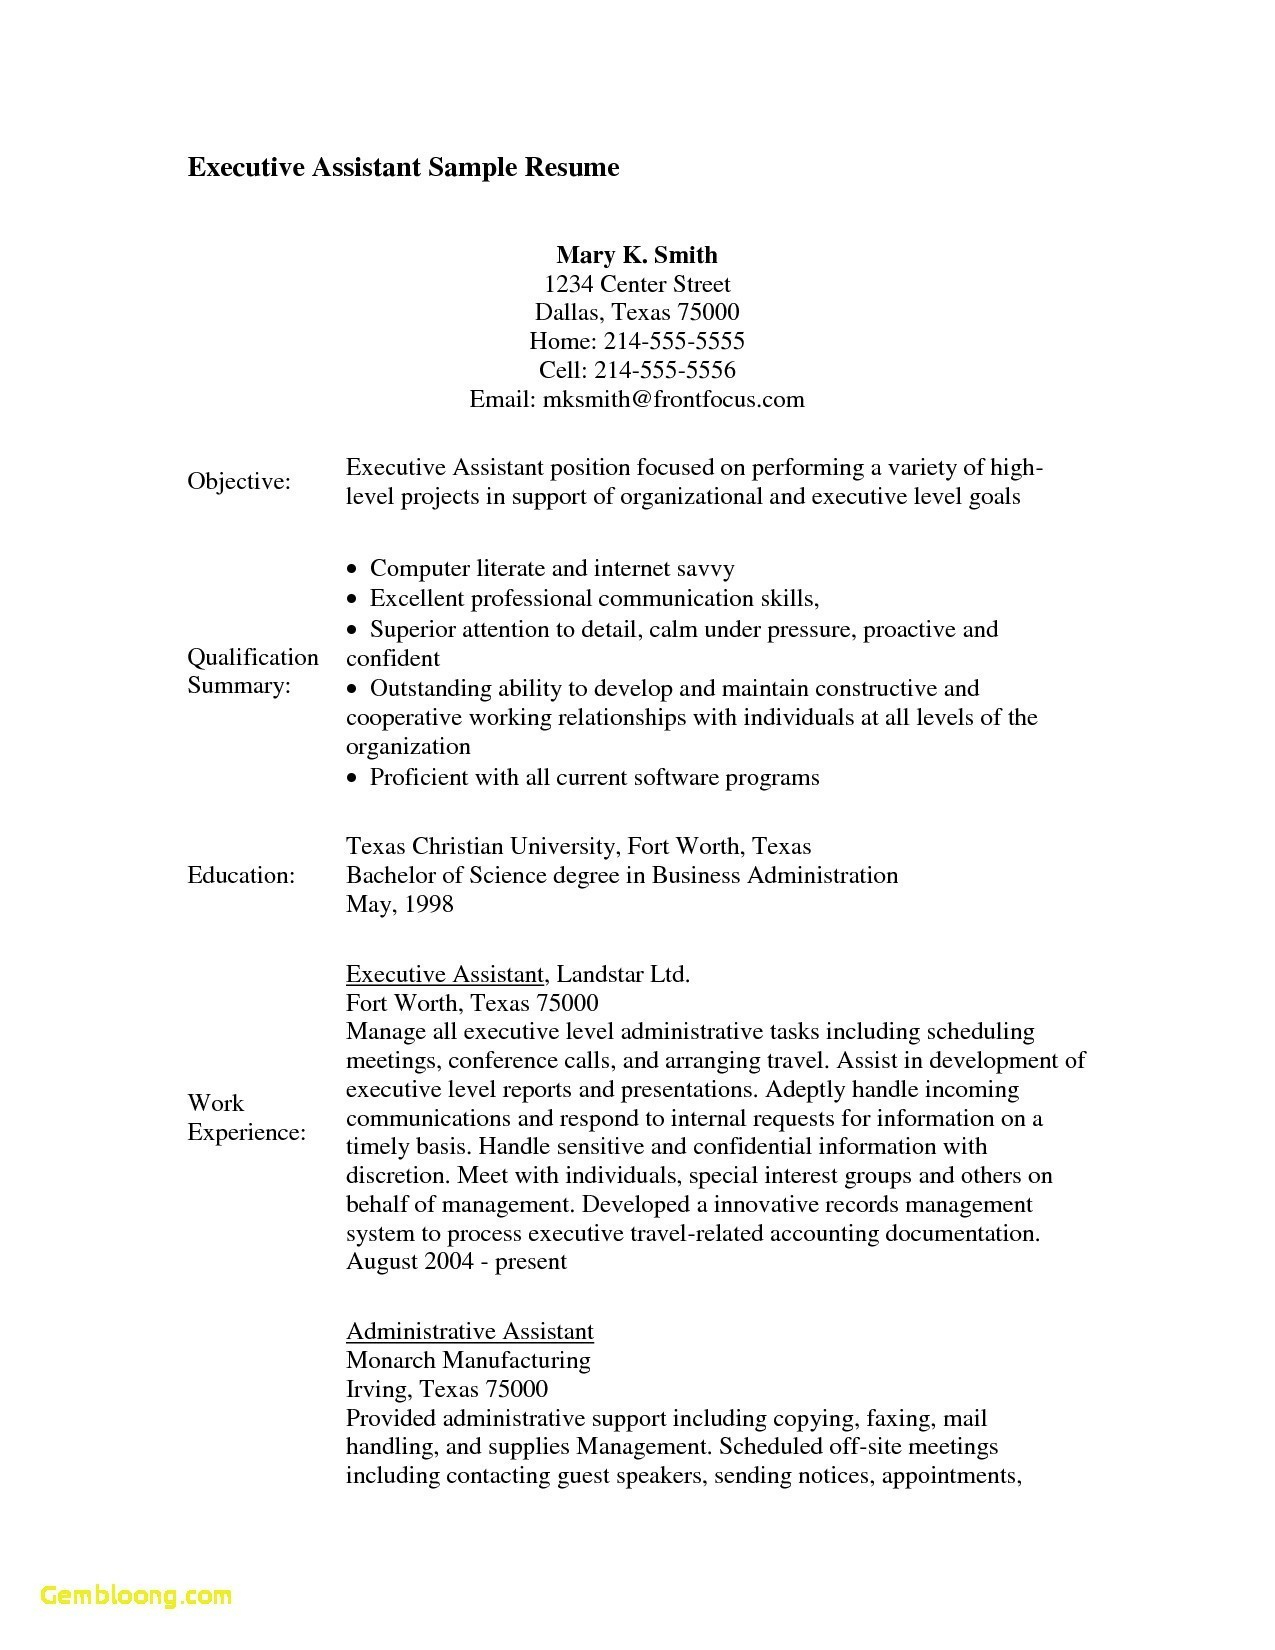 Medical assistant Resume Template Microsoft Word - Medical assistant Resume Samples Fresh Graduate Resume Template